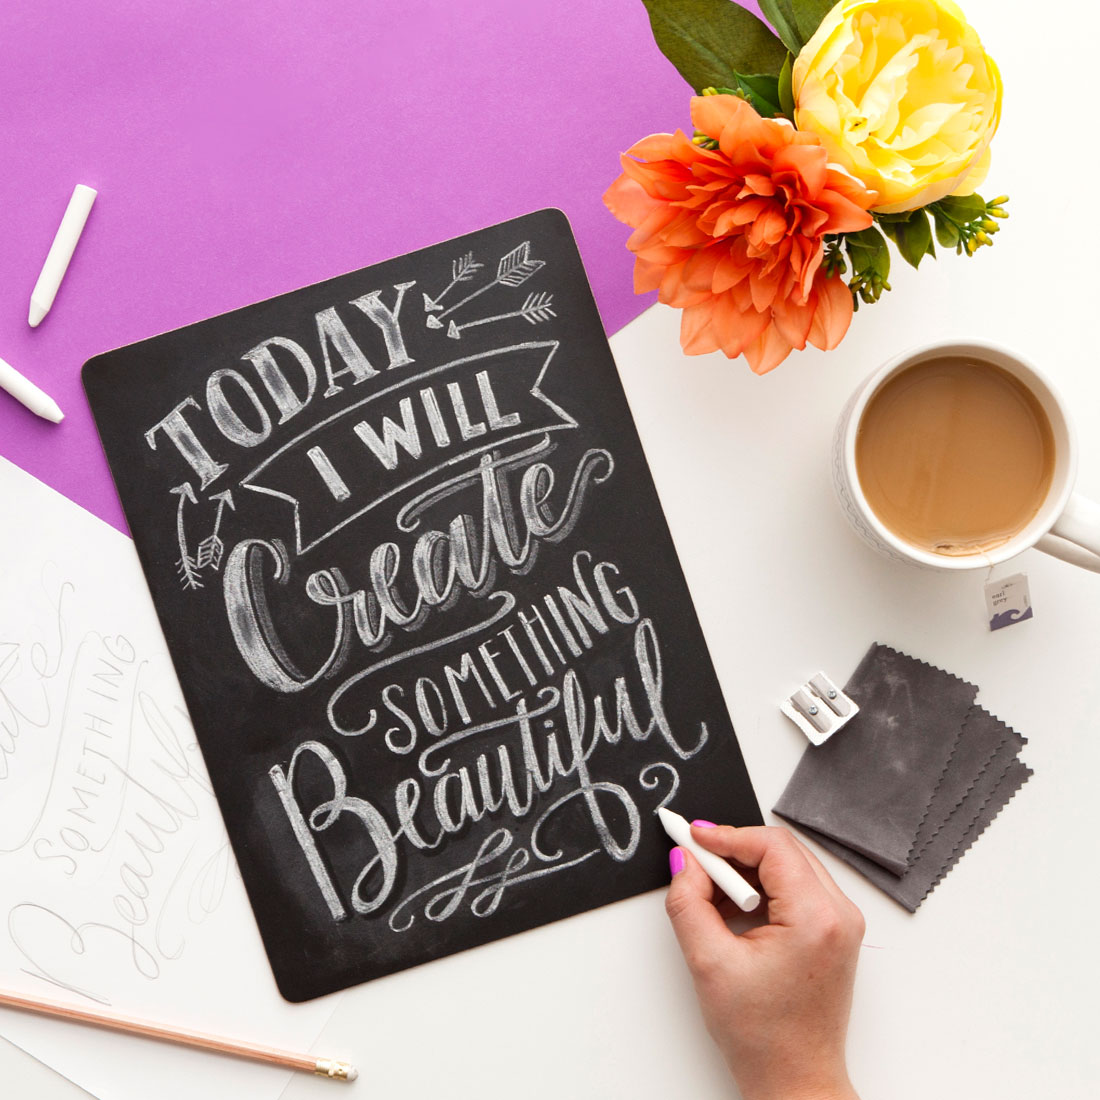 Online Chalk Lettering Class by Valerie McKeehan offered through Brit + Co